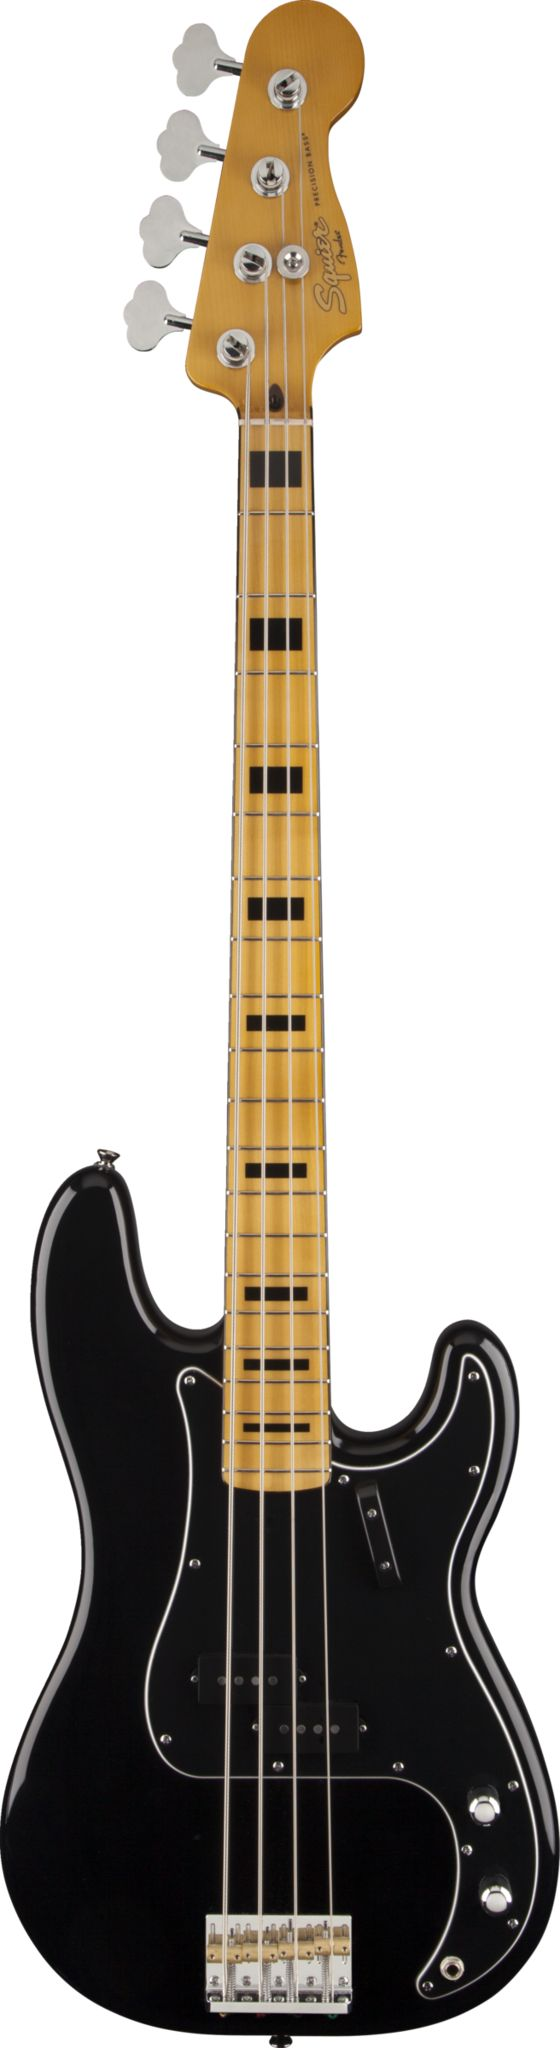 Squier Classic Vibe P Bass '70s.... Cheap bass but plays and looks nice